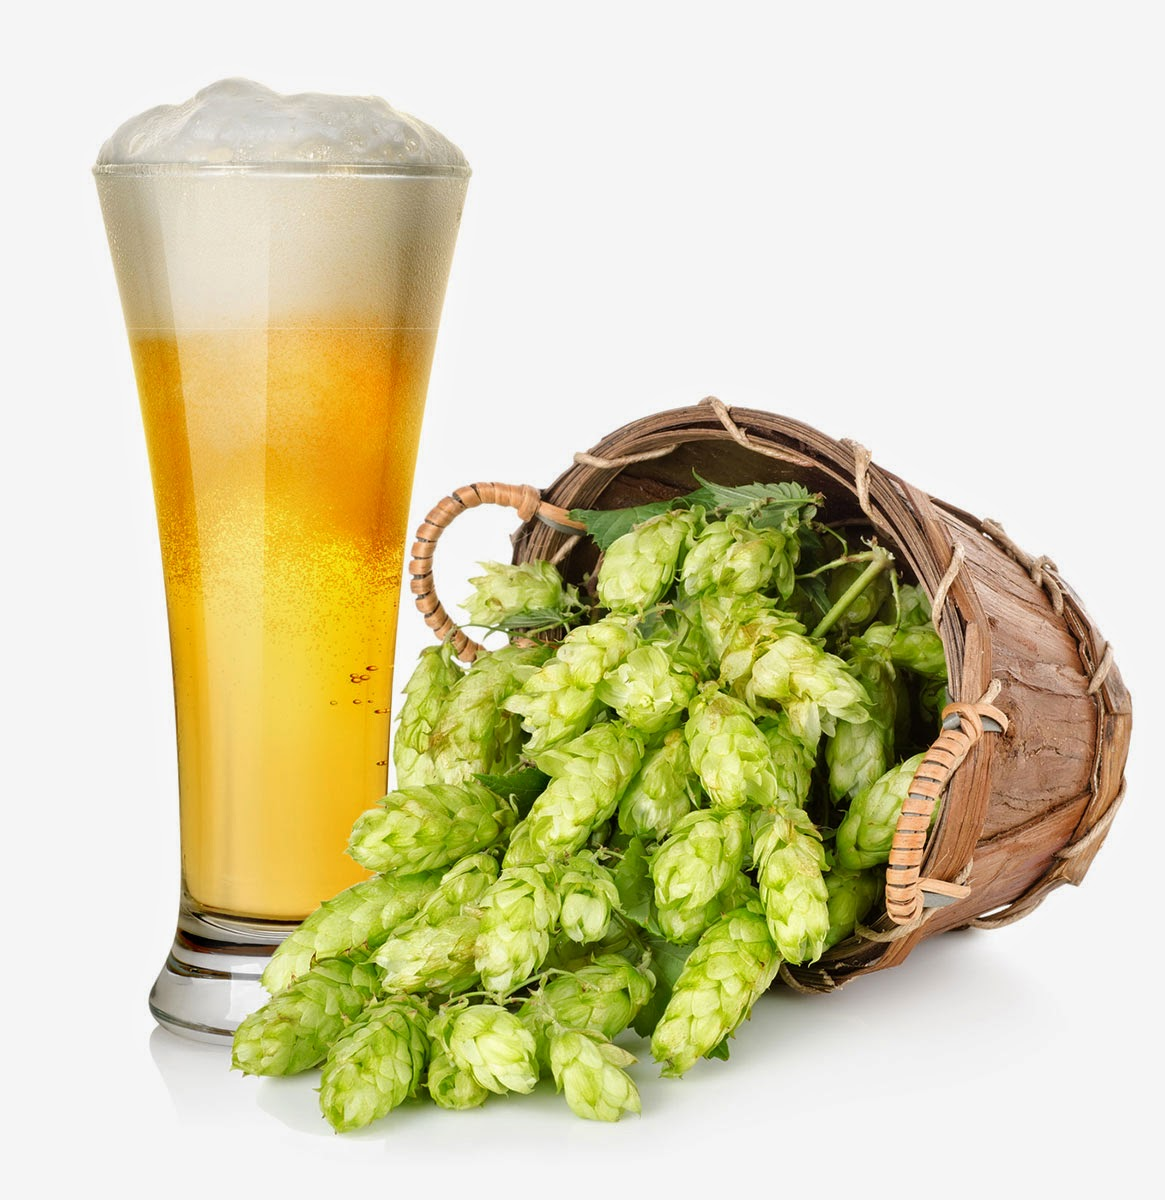 beer in glass - basket of green hops - photo image